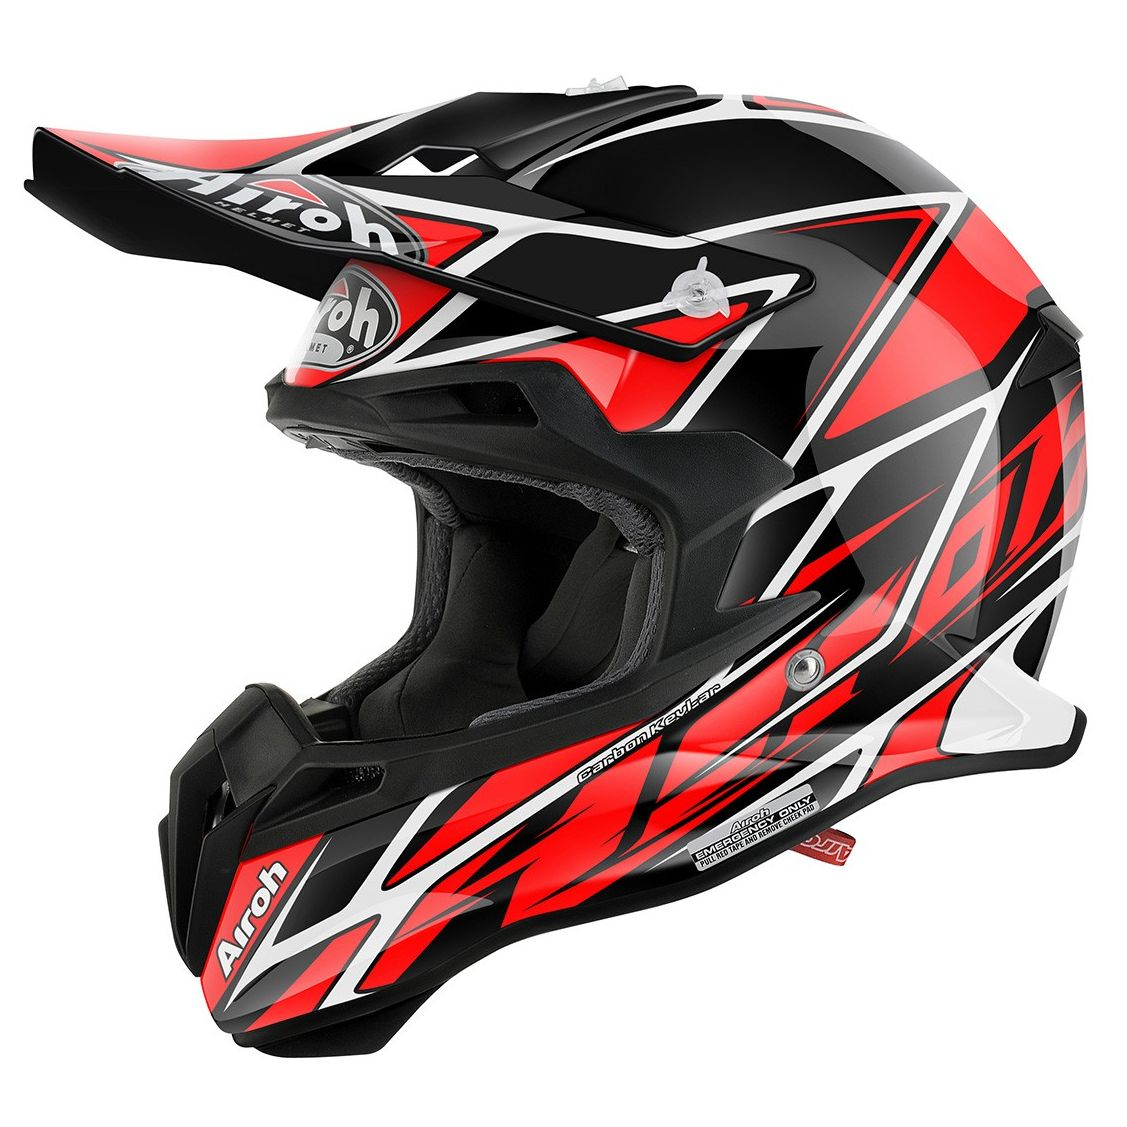 casque cross airoh destockage terminator 2 1 net red 2017 equipement du cross access. Black Bedroom Furniture Sets. Home Design Ideas